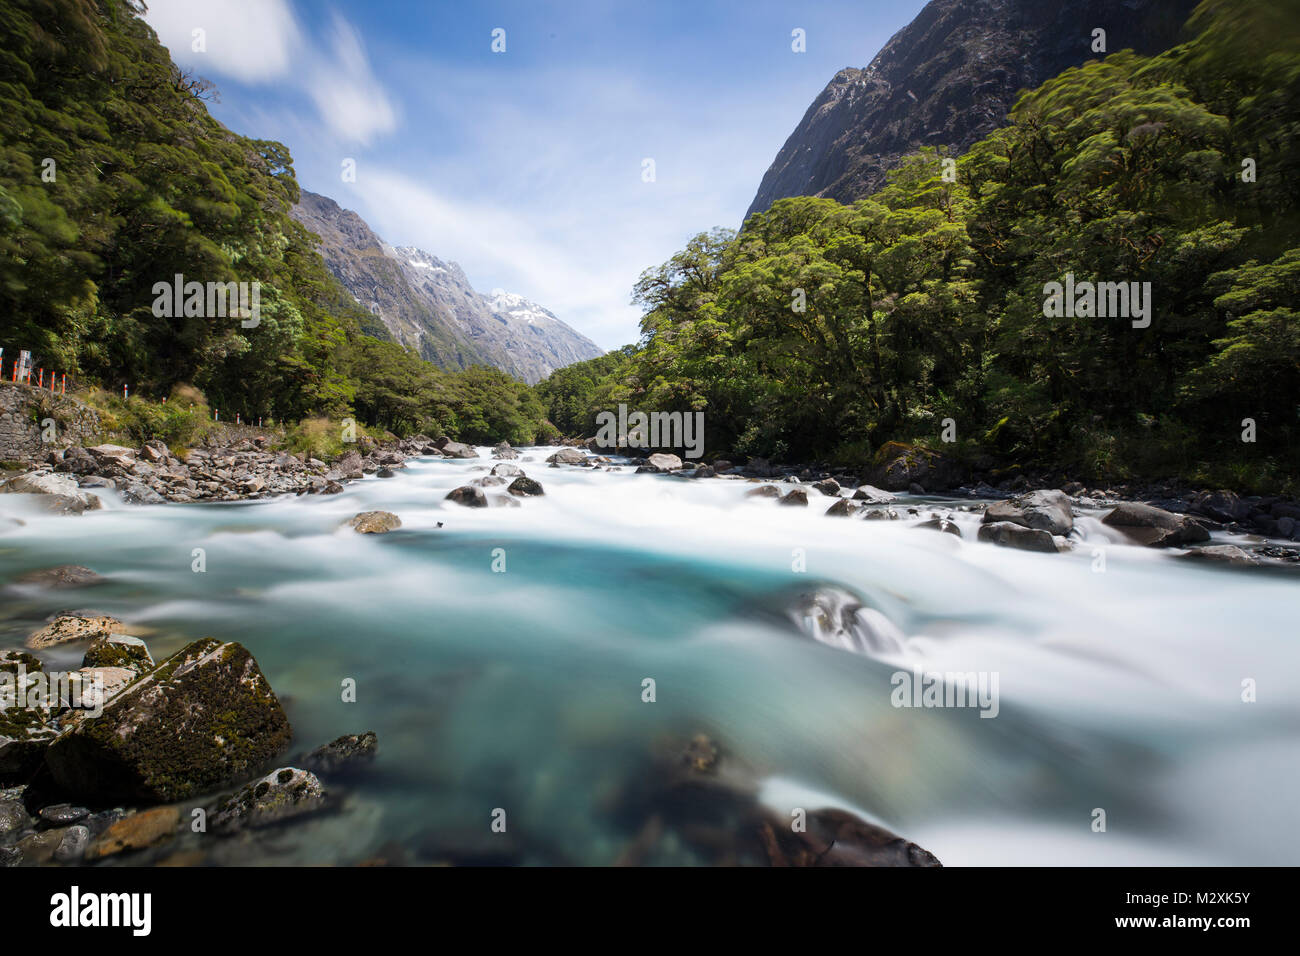 Queenstown, South Island, New Zealand - Stock Image